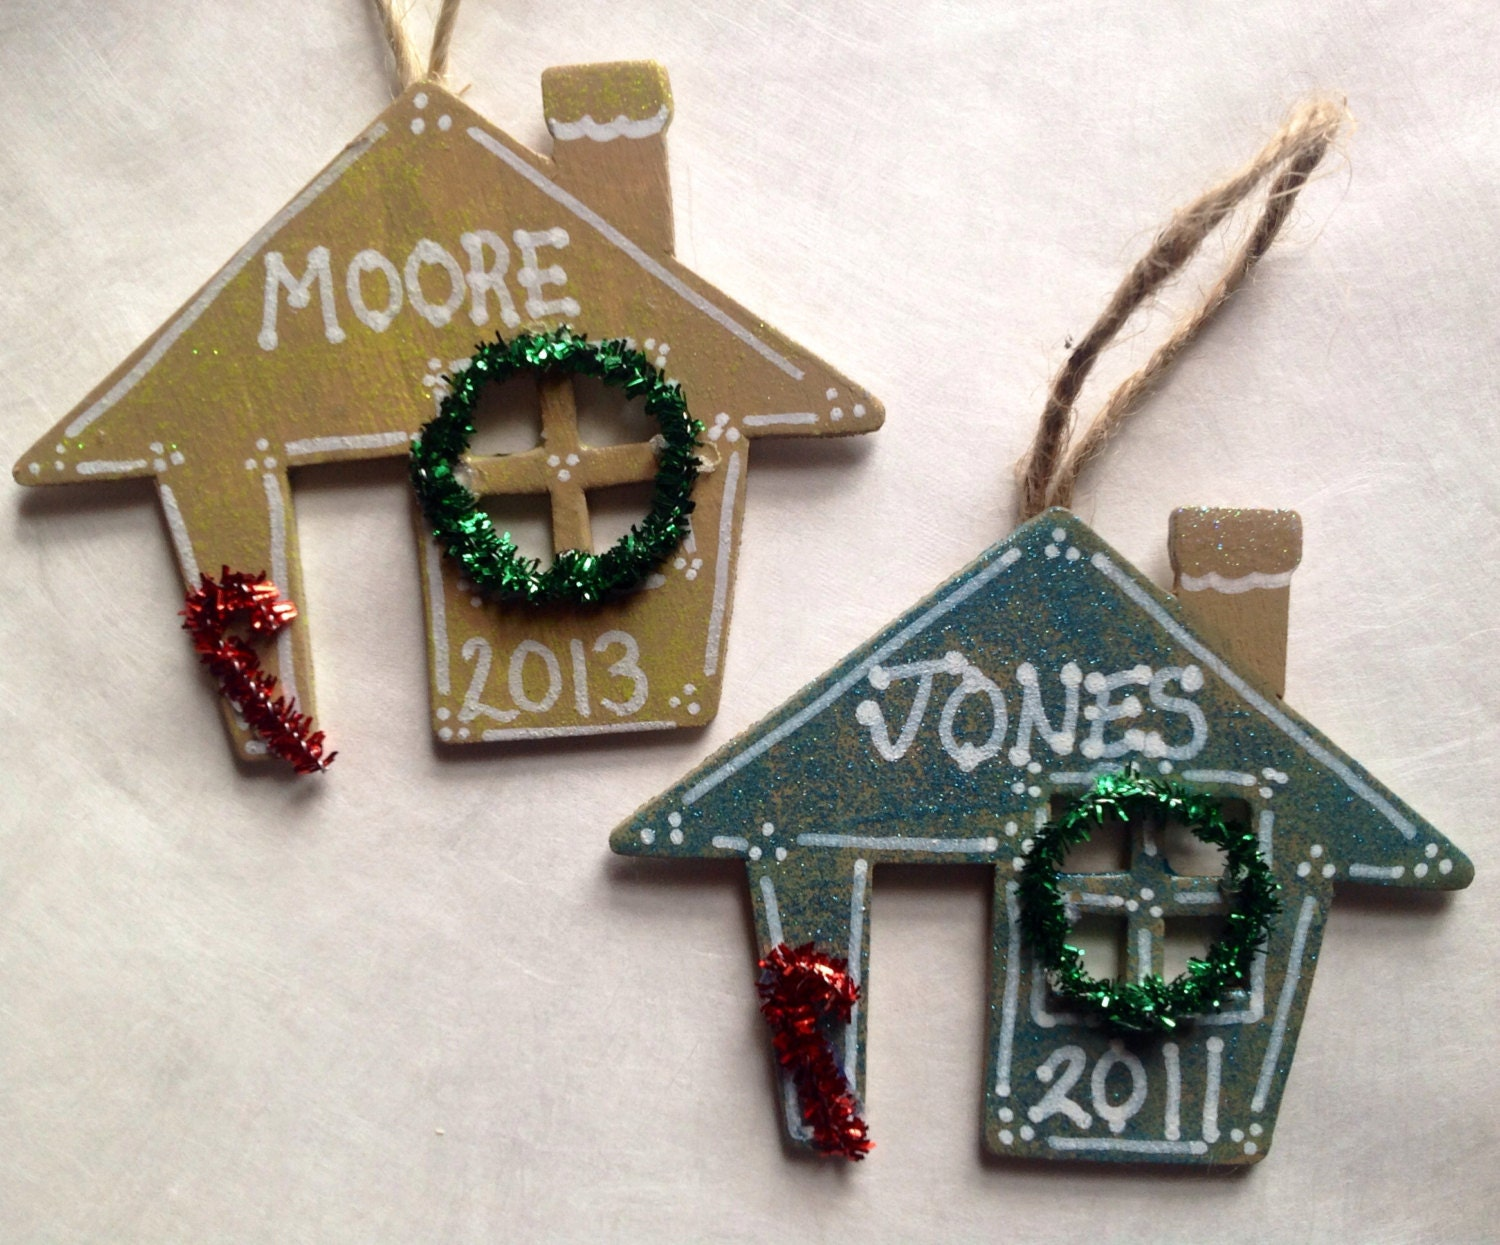 Hand Painted Personalized Wooden House Christmas Ornament with Wreath and Candy Cane. FREE personalization.